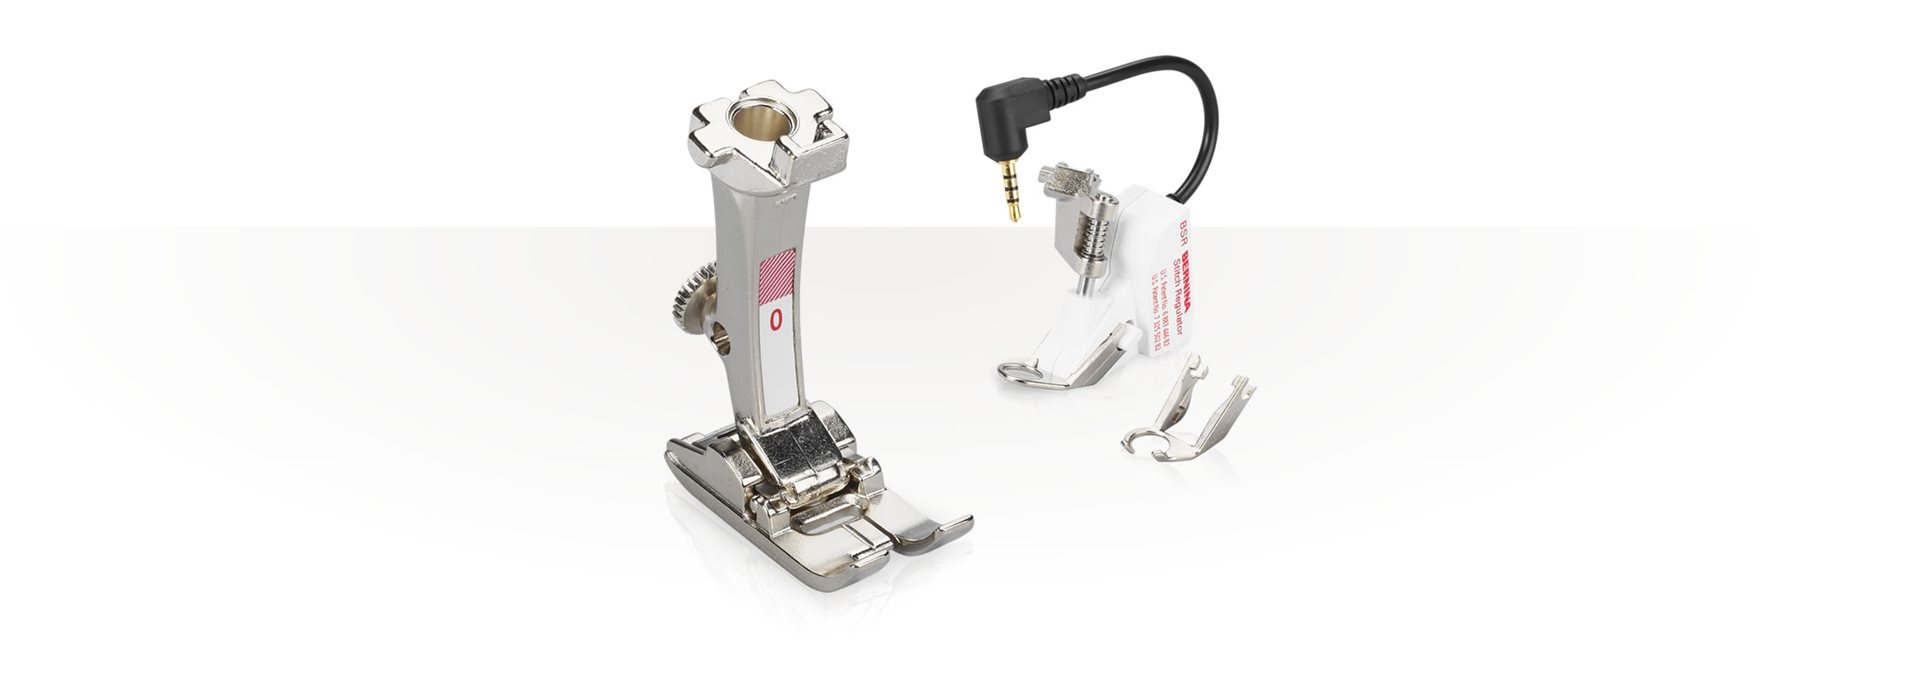 Picture: Information about BERNINA presser feet